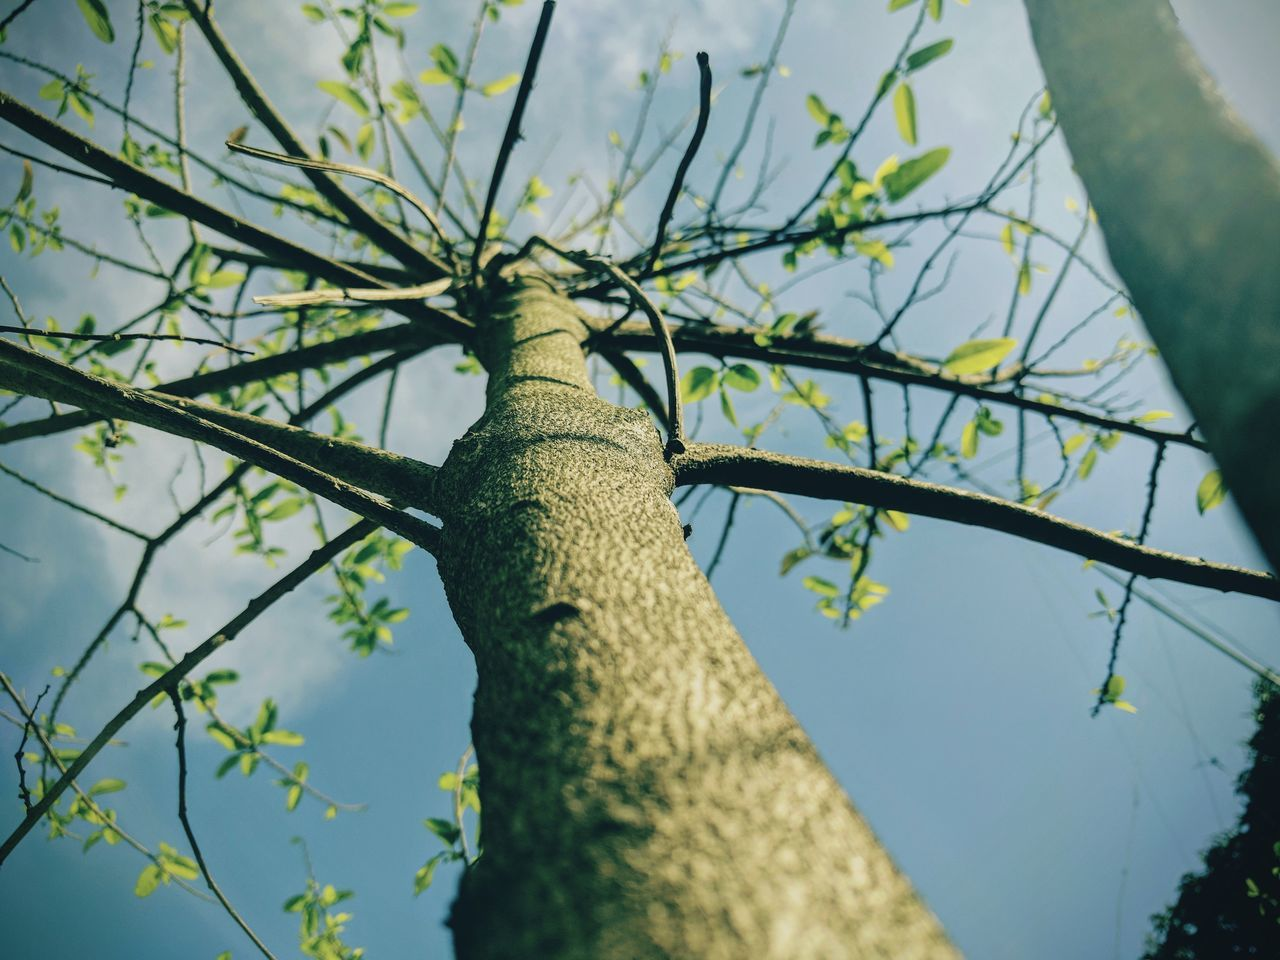 tree, low angle view, day, branch, outdoors, green color, nature, animals in the wild, no people, animal themes, animal wildlife, one animal, close-up, beauty in nature, perching, sky